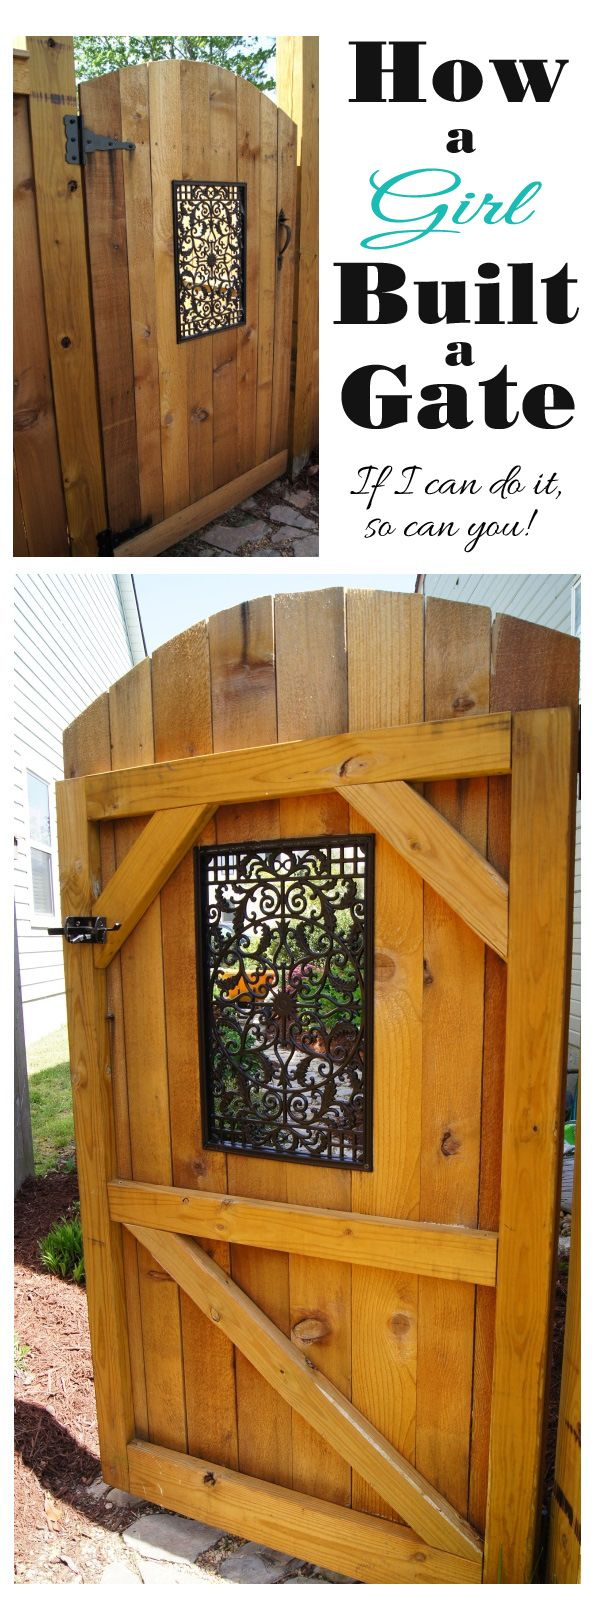 How a girl built a gate decorative windows confessions and gate